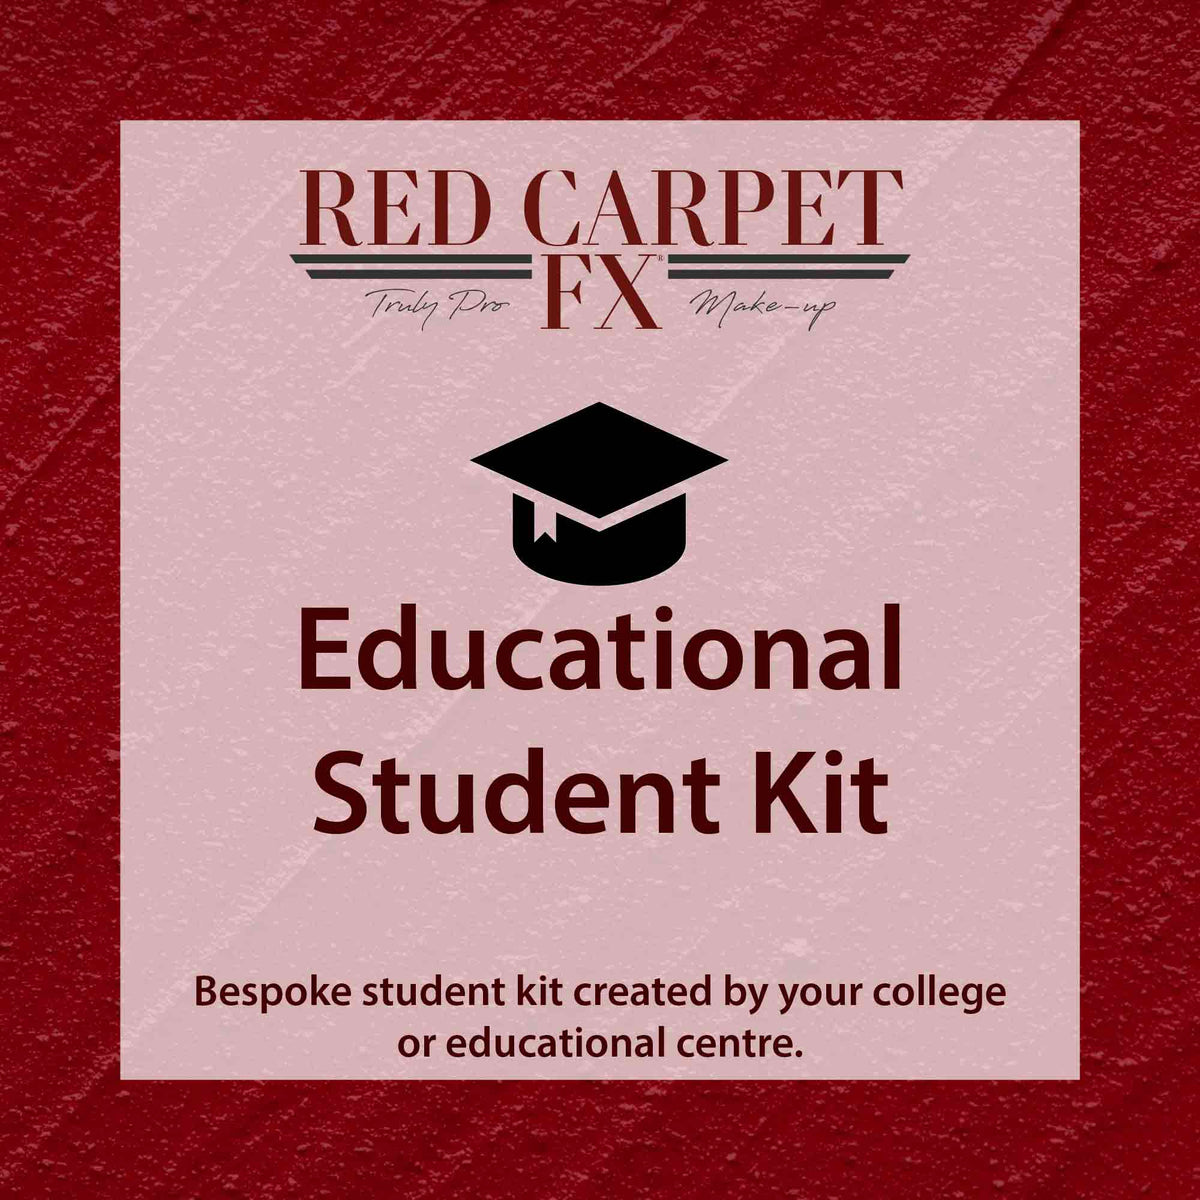 HCSFX-20 - Student Educational College Kit